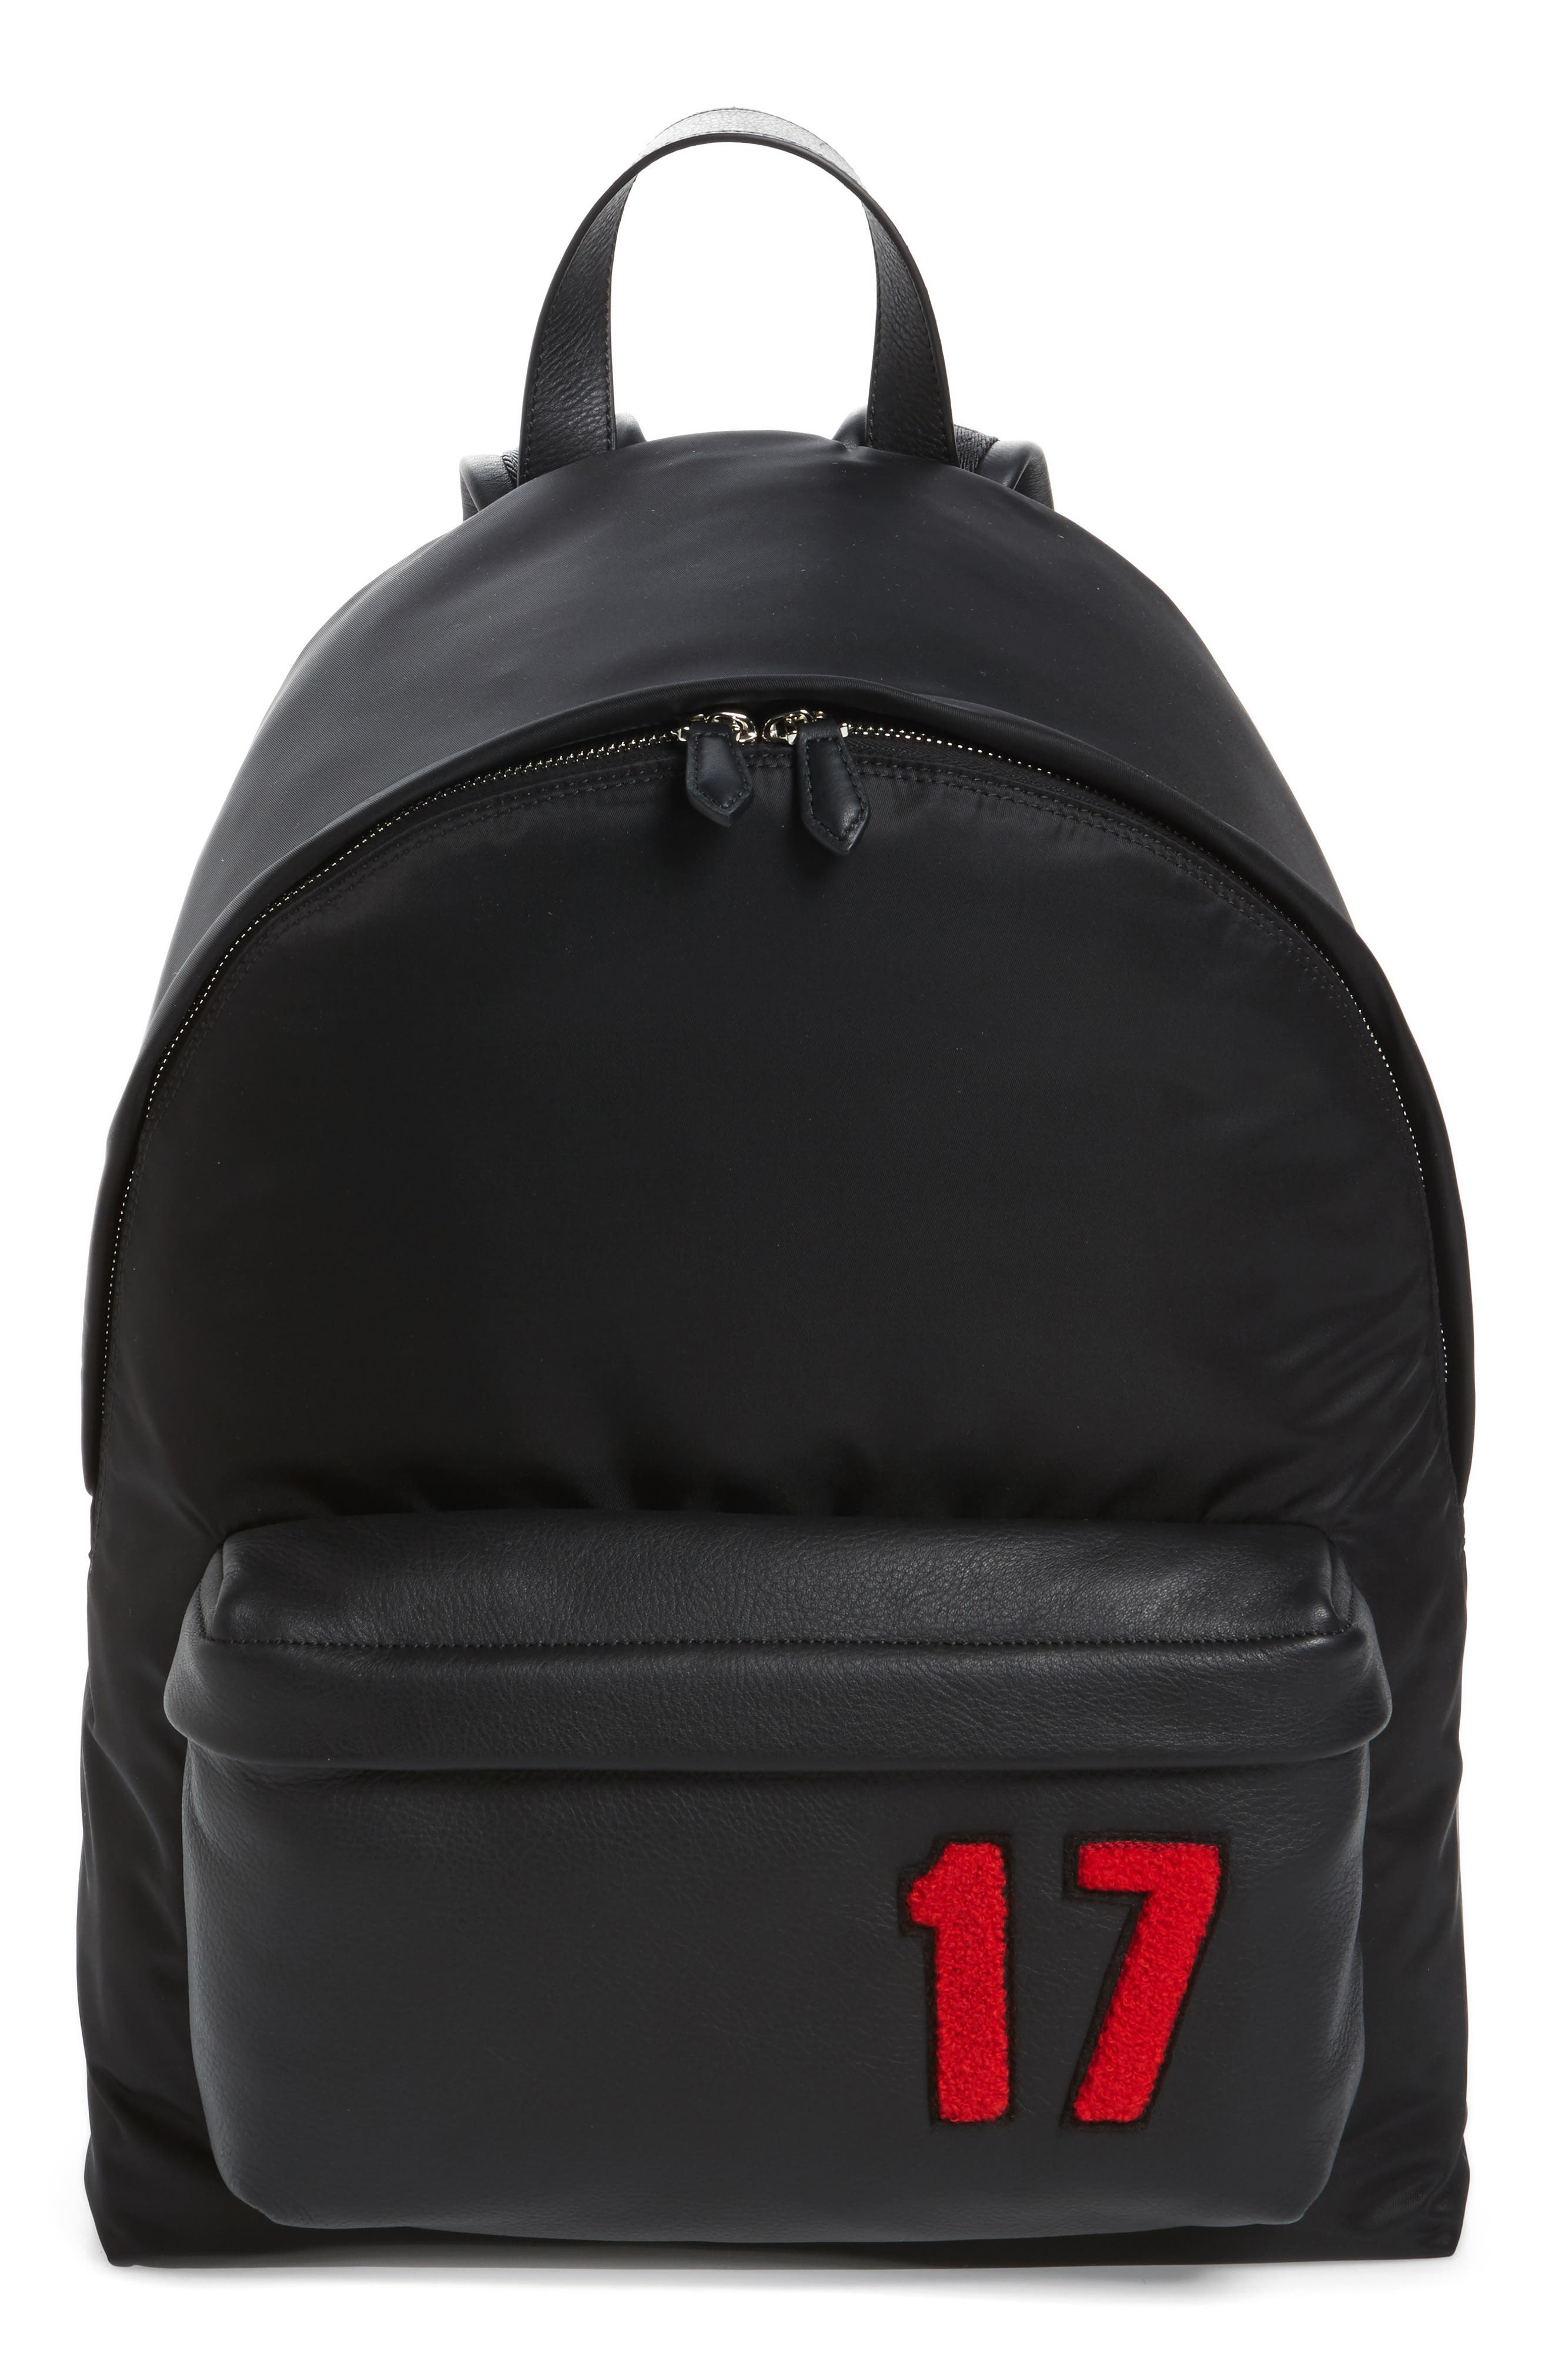 Givenchy 17 Patch Mix Media Backpack